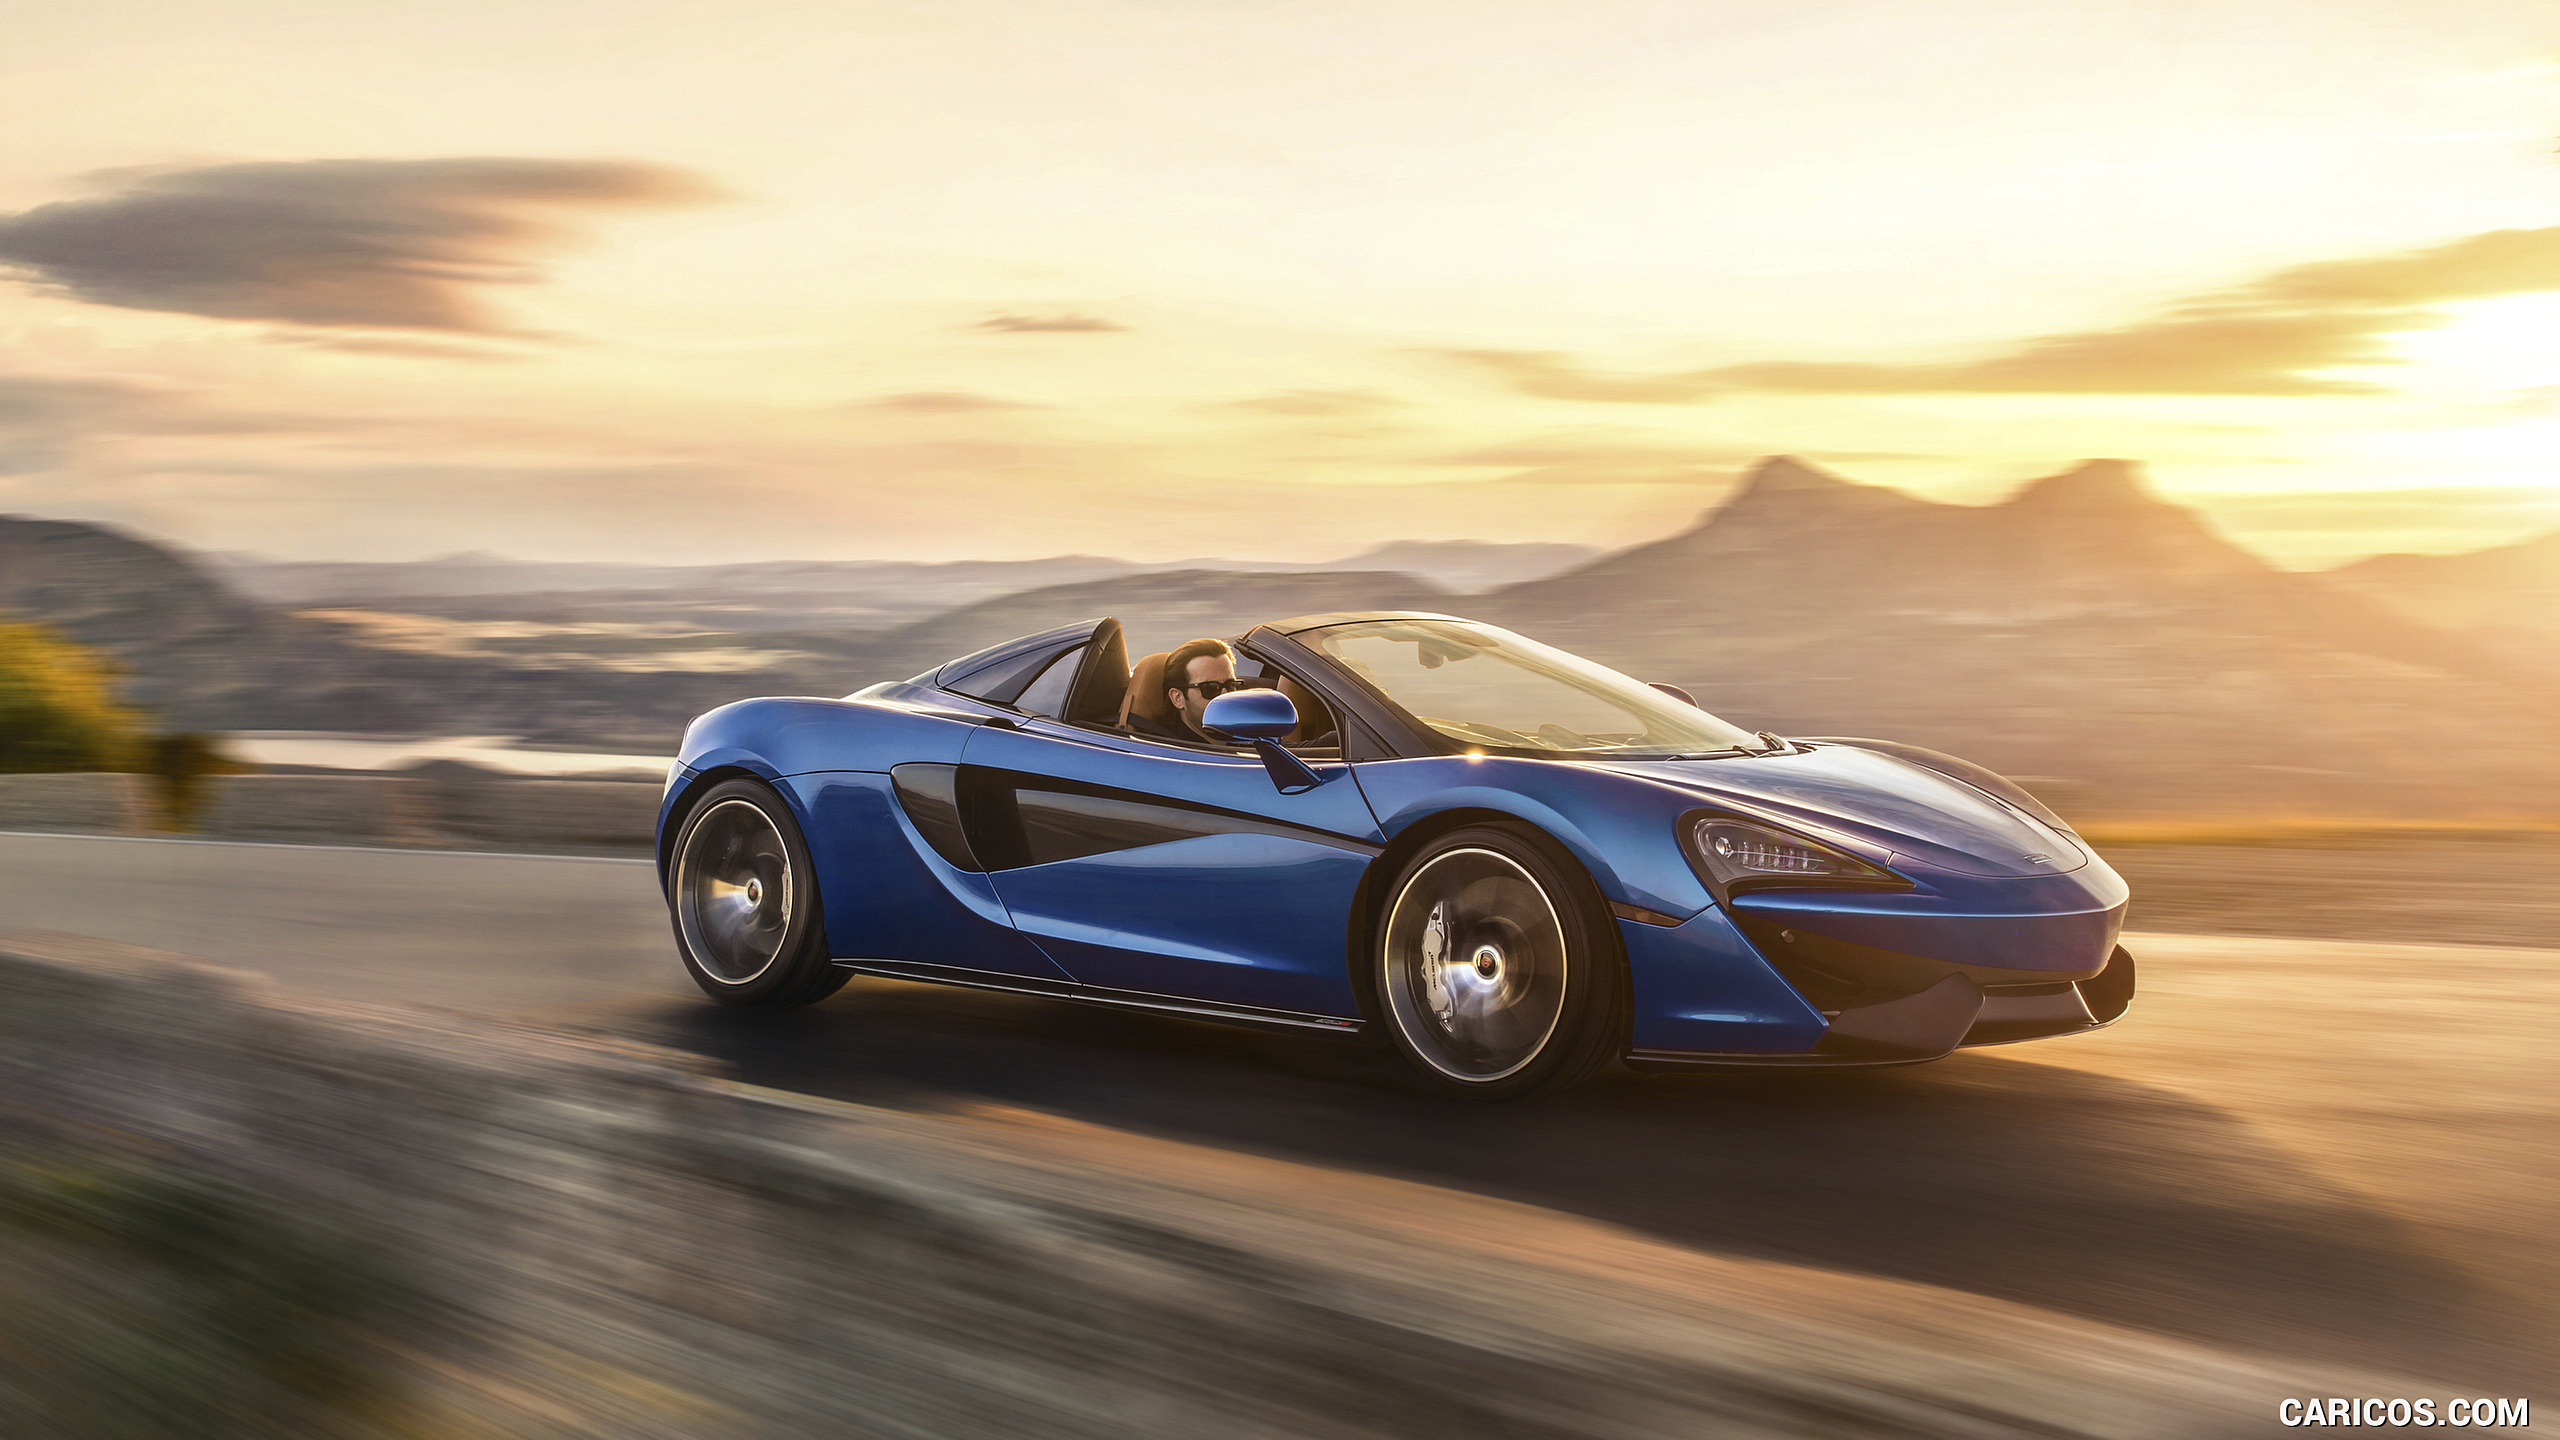 2018 McLaren 570S Spider Color Vega Blue   Front Three Quarter 2560x1440